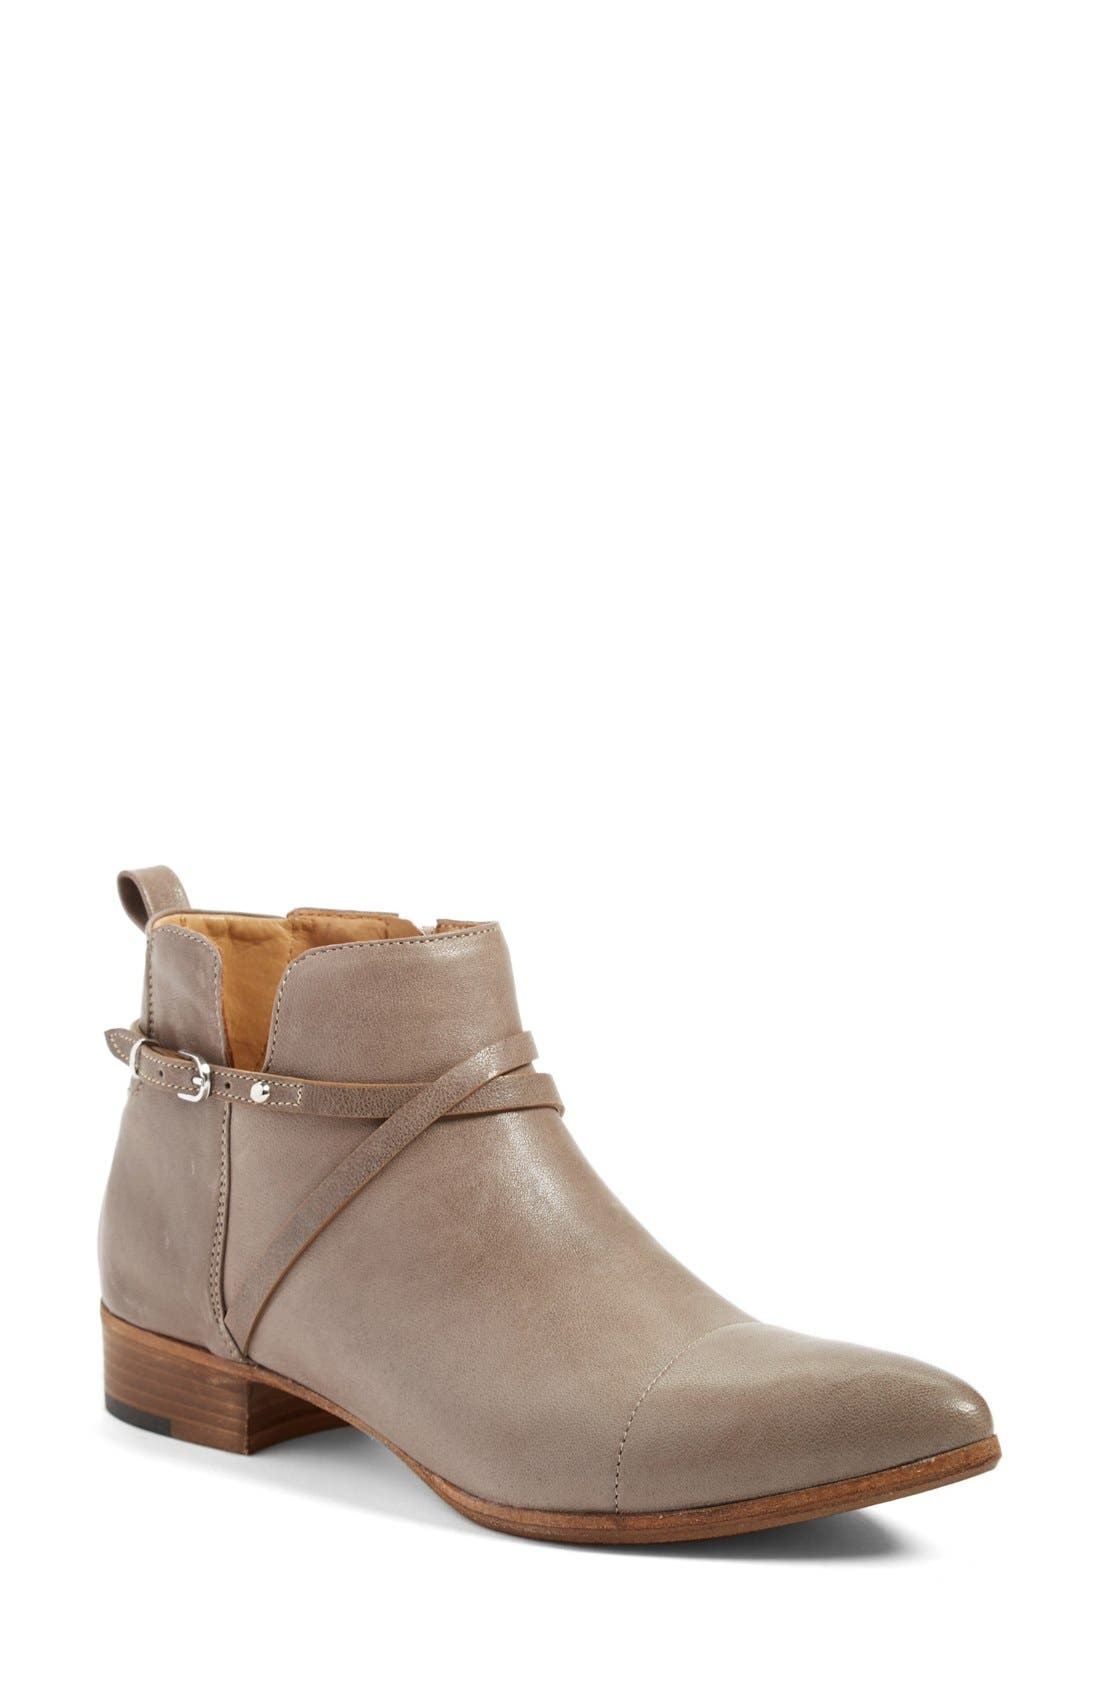 'Mea' Ankle Boot,                             Main thumbnail 4, color,